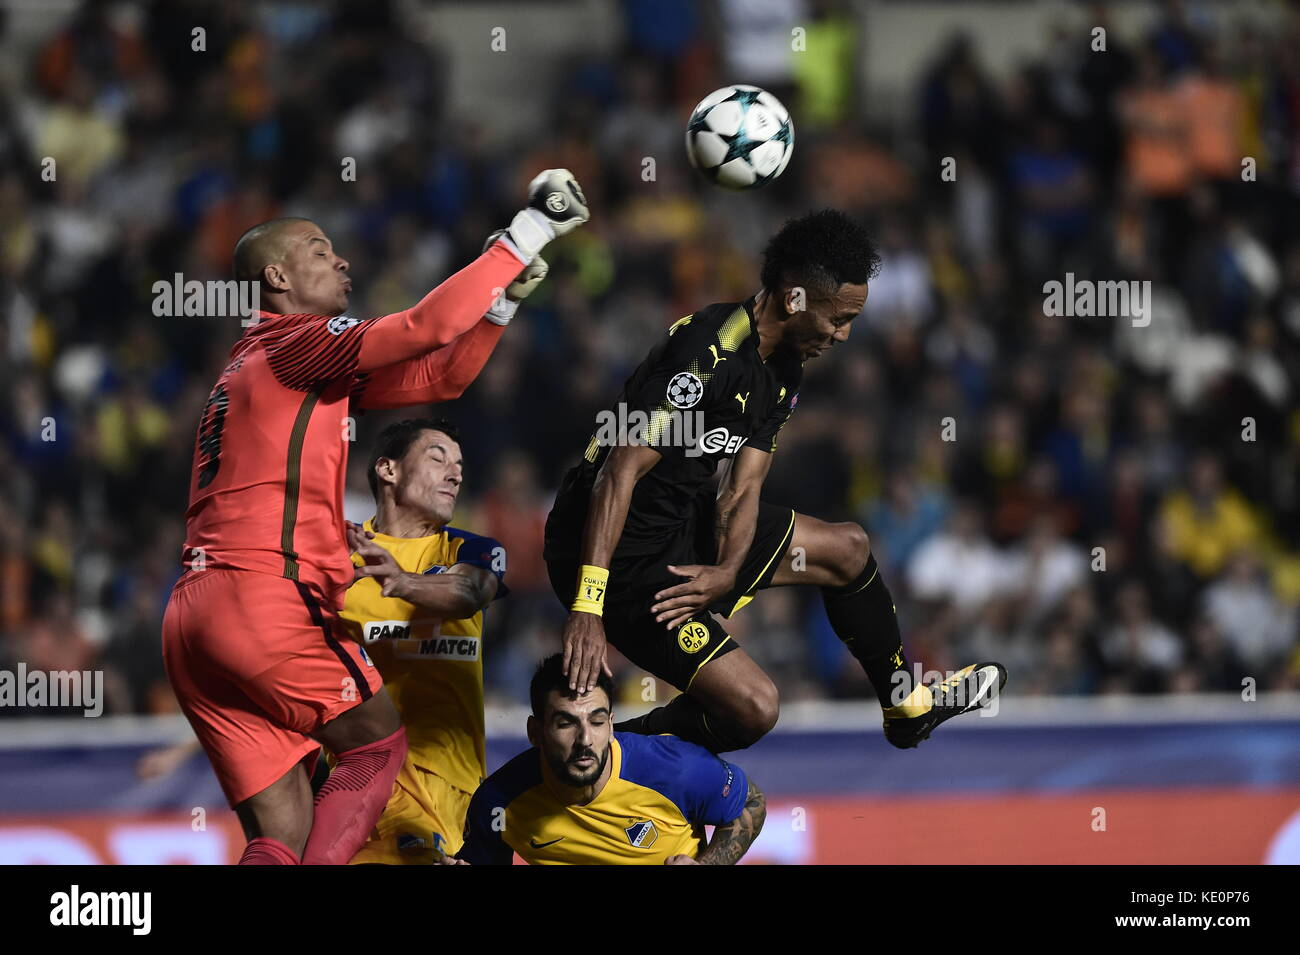 Nicosia, Cyprus. 17th Oct, 2017. Nicosia's goalkeeper Boy Waterman punches the ball clear during the Champions League Stock Photo